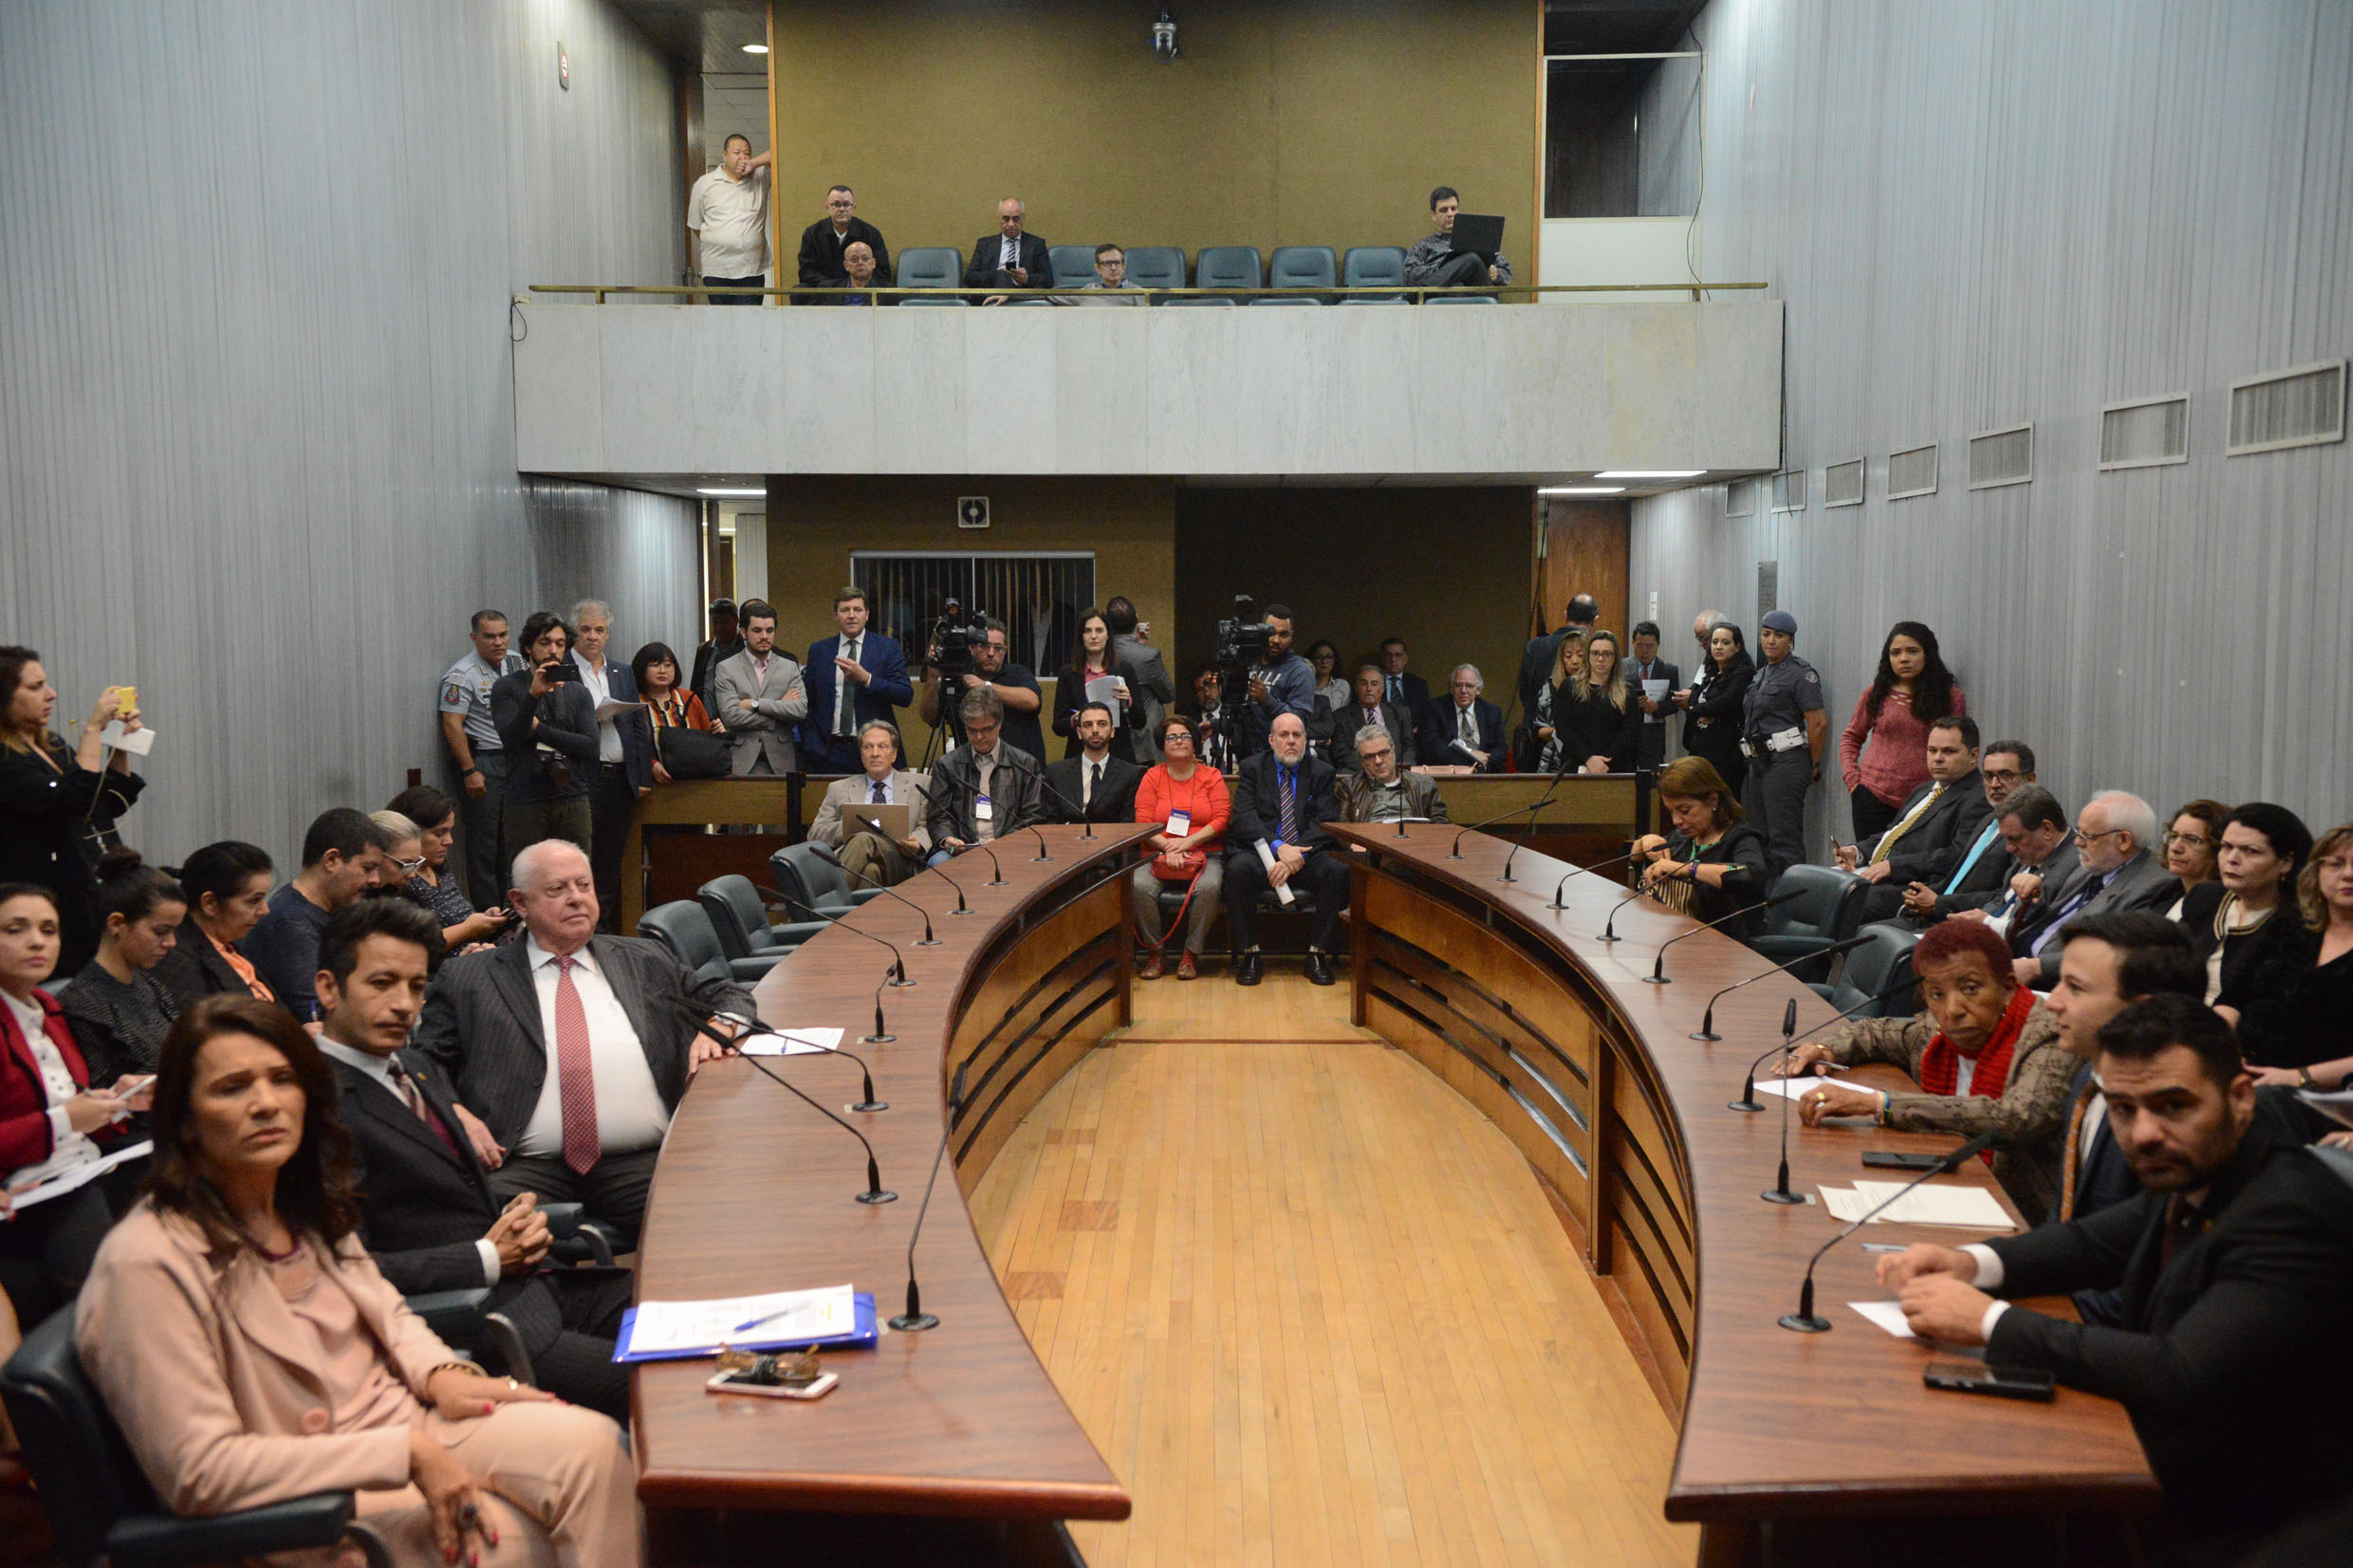 Parlamentares na CPI<a style='float:right' href='https://www3.al.sp.gov.br/repositorio/noticia/N-10-2019/fg241524.jpg' target=_blank><img src='/_img/material-file-download-white.png' width='14px' alt='Clique para baixar a imagem'></a>